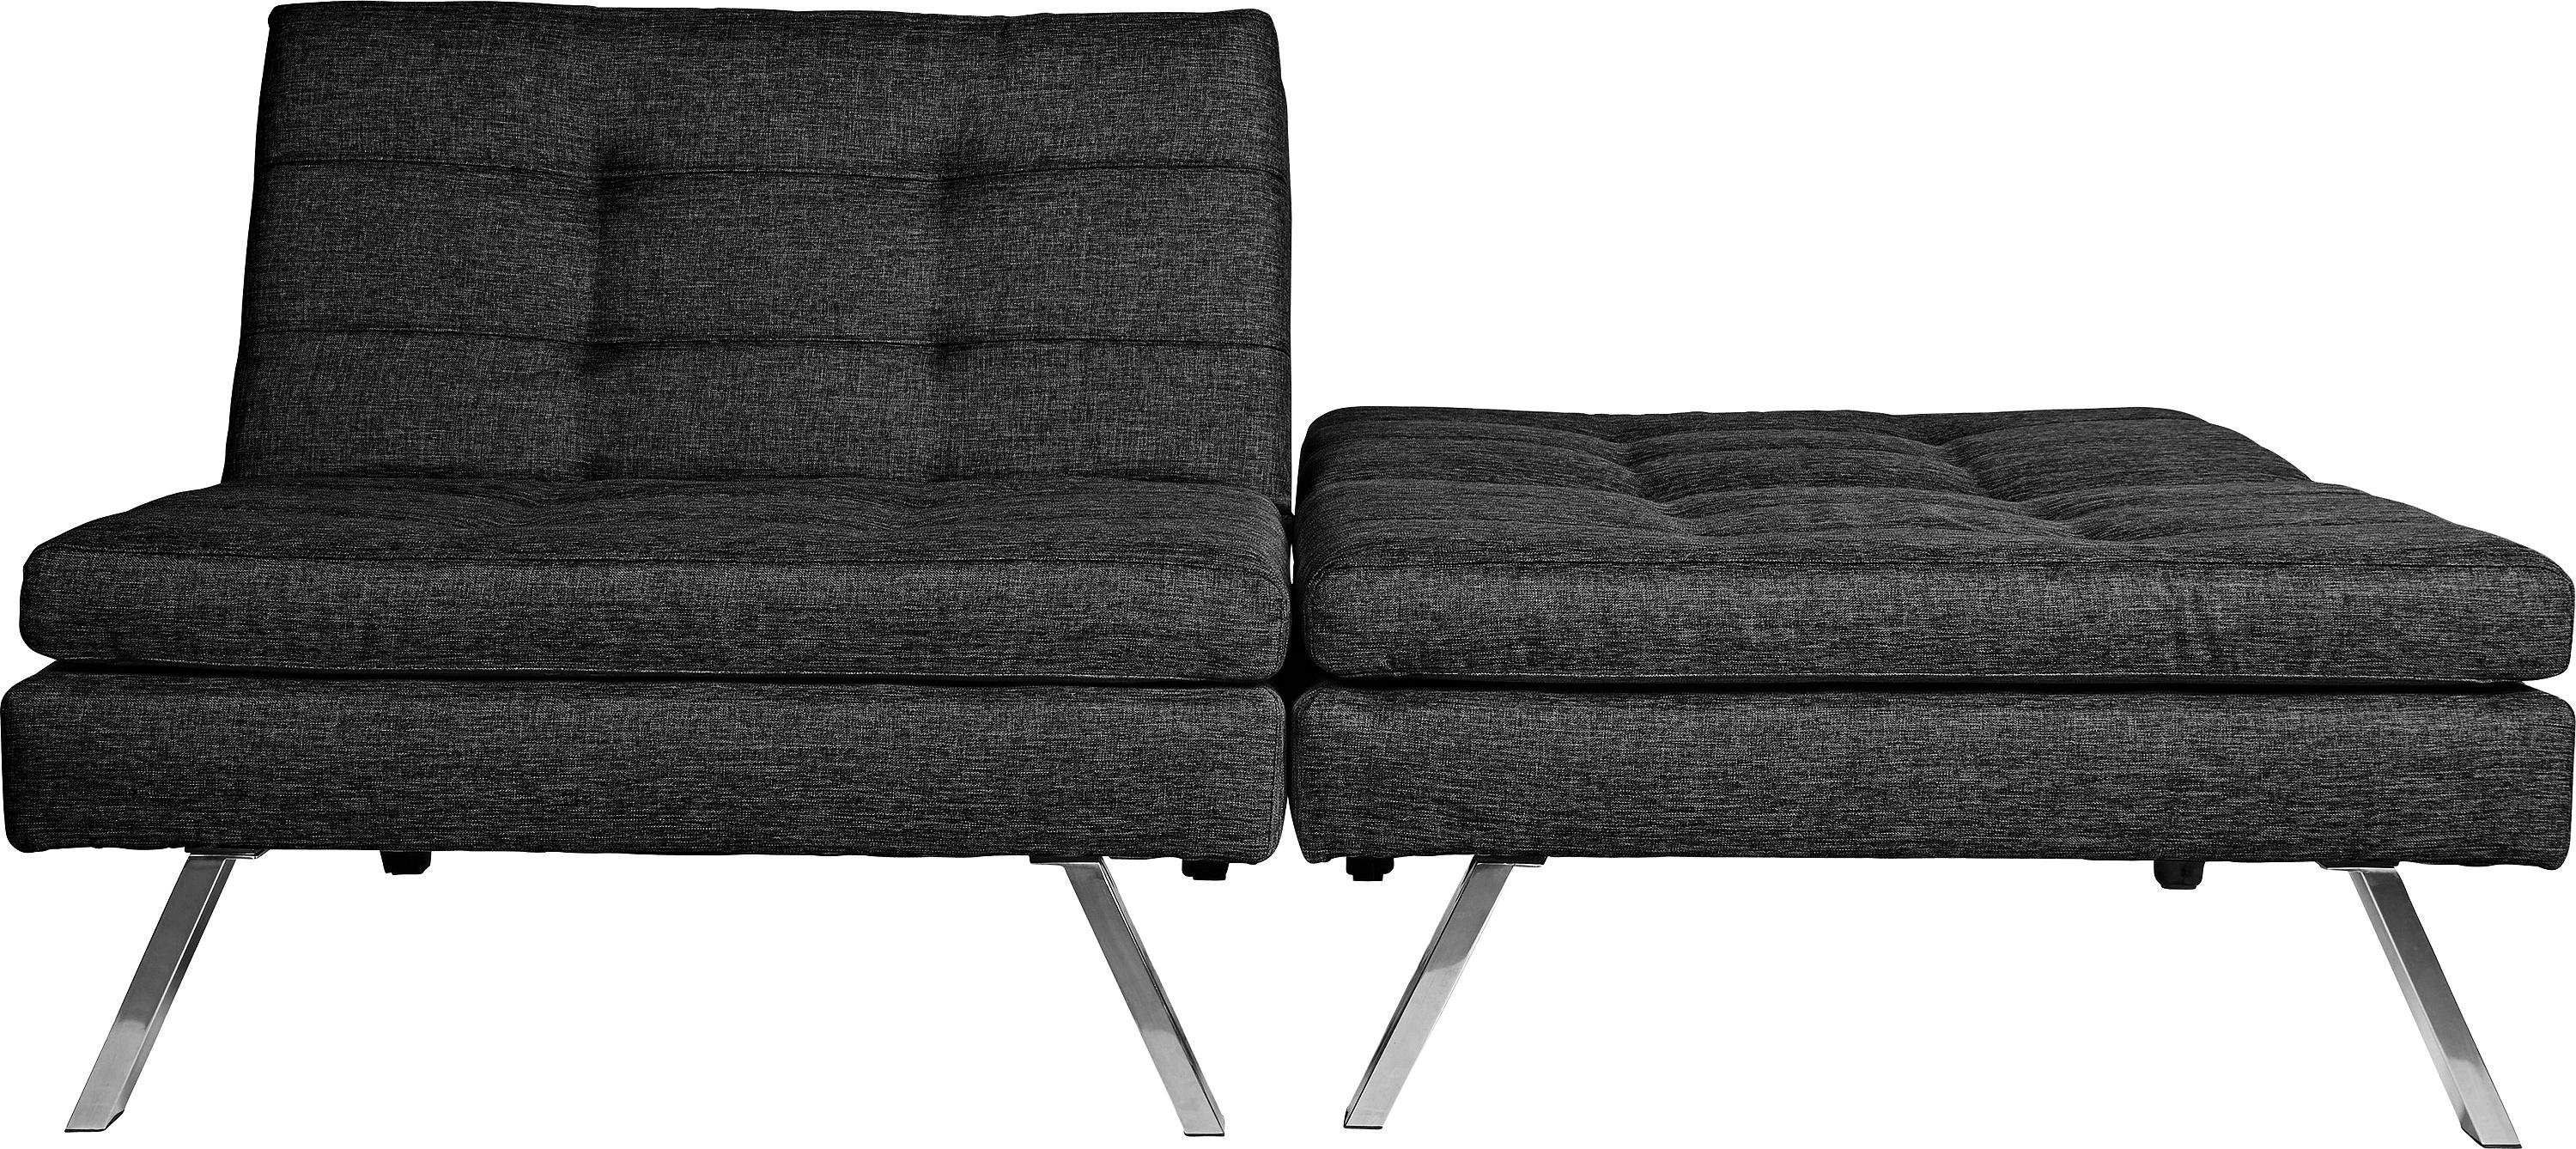 Argos Home Duo 2 Seater Clic Clac Sofa Bed - Charcoal